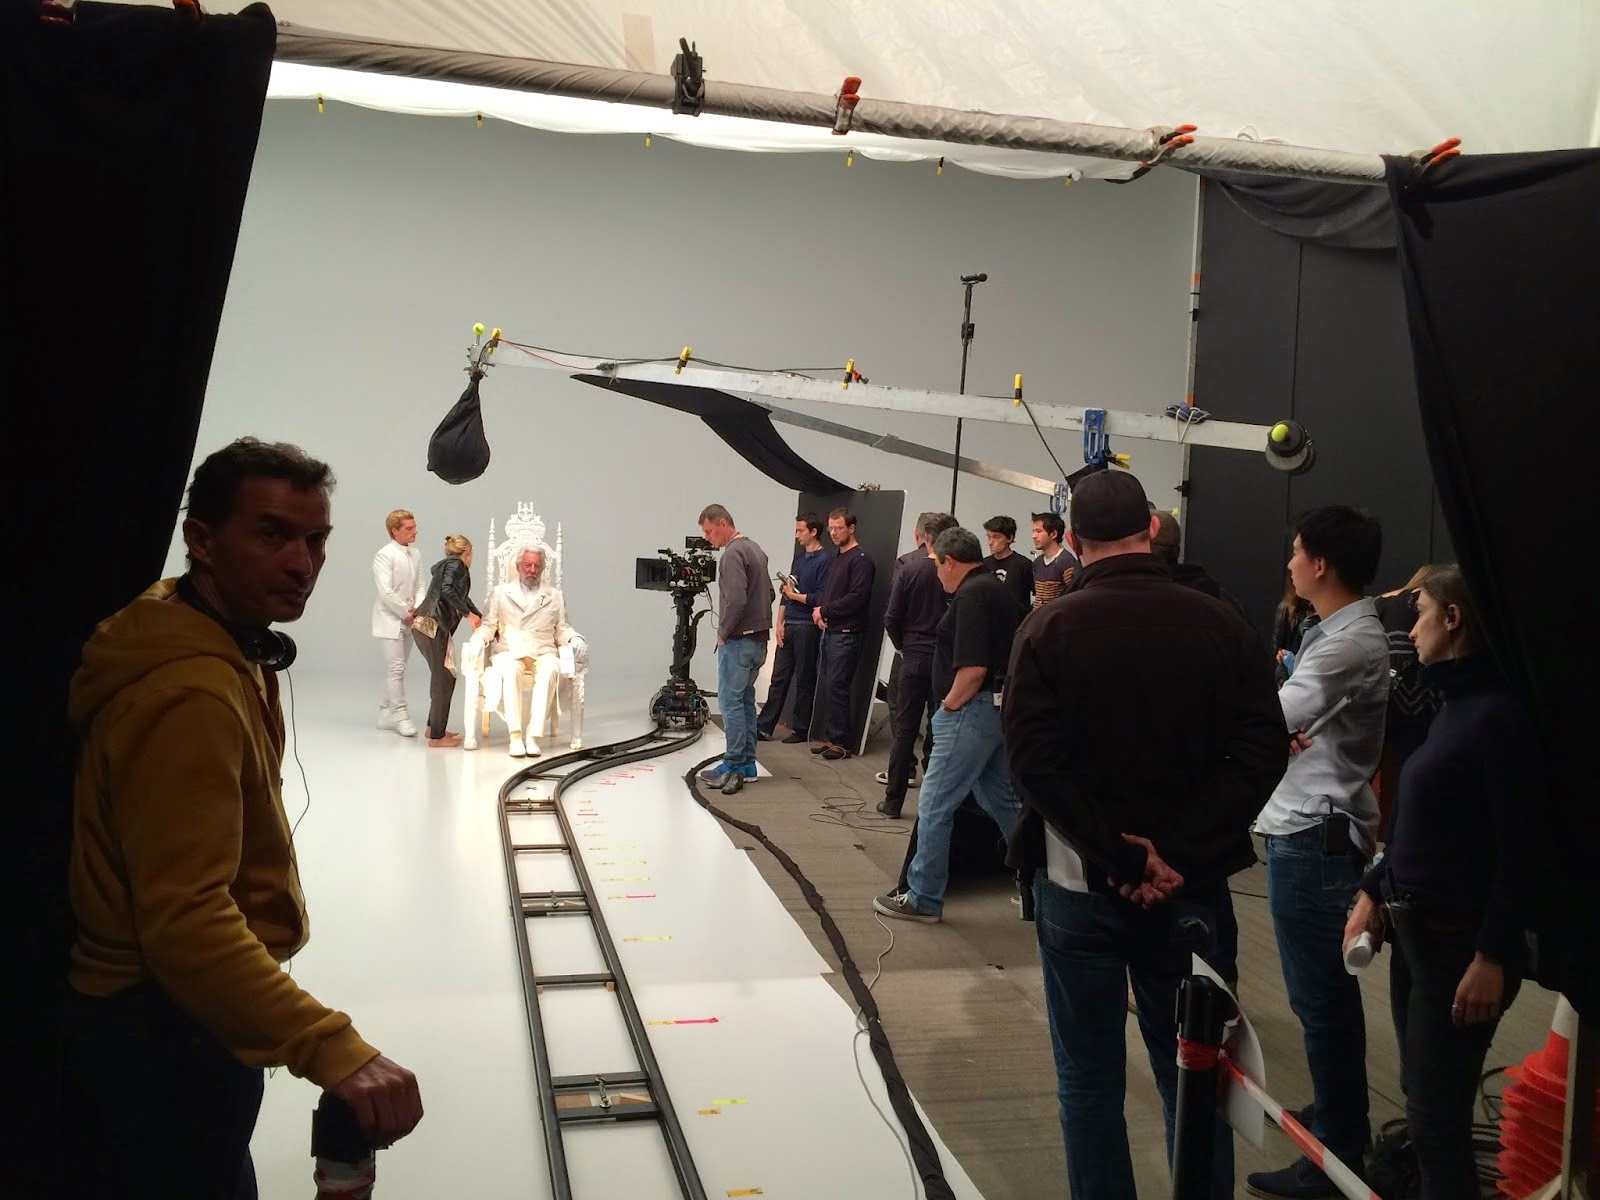 PHOTOS: NEW Behind-The-Scenes Photos From Mockingjay Part